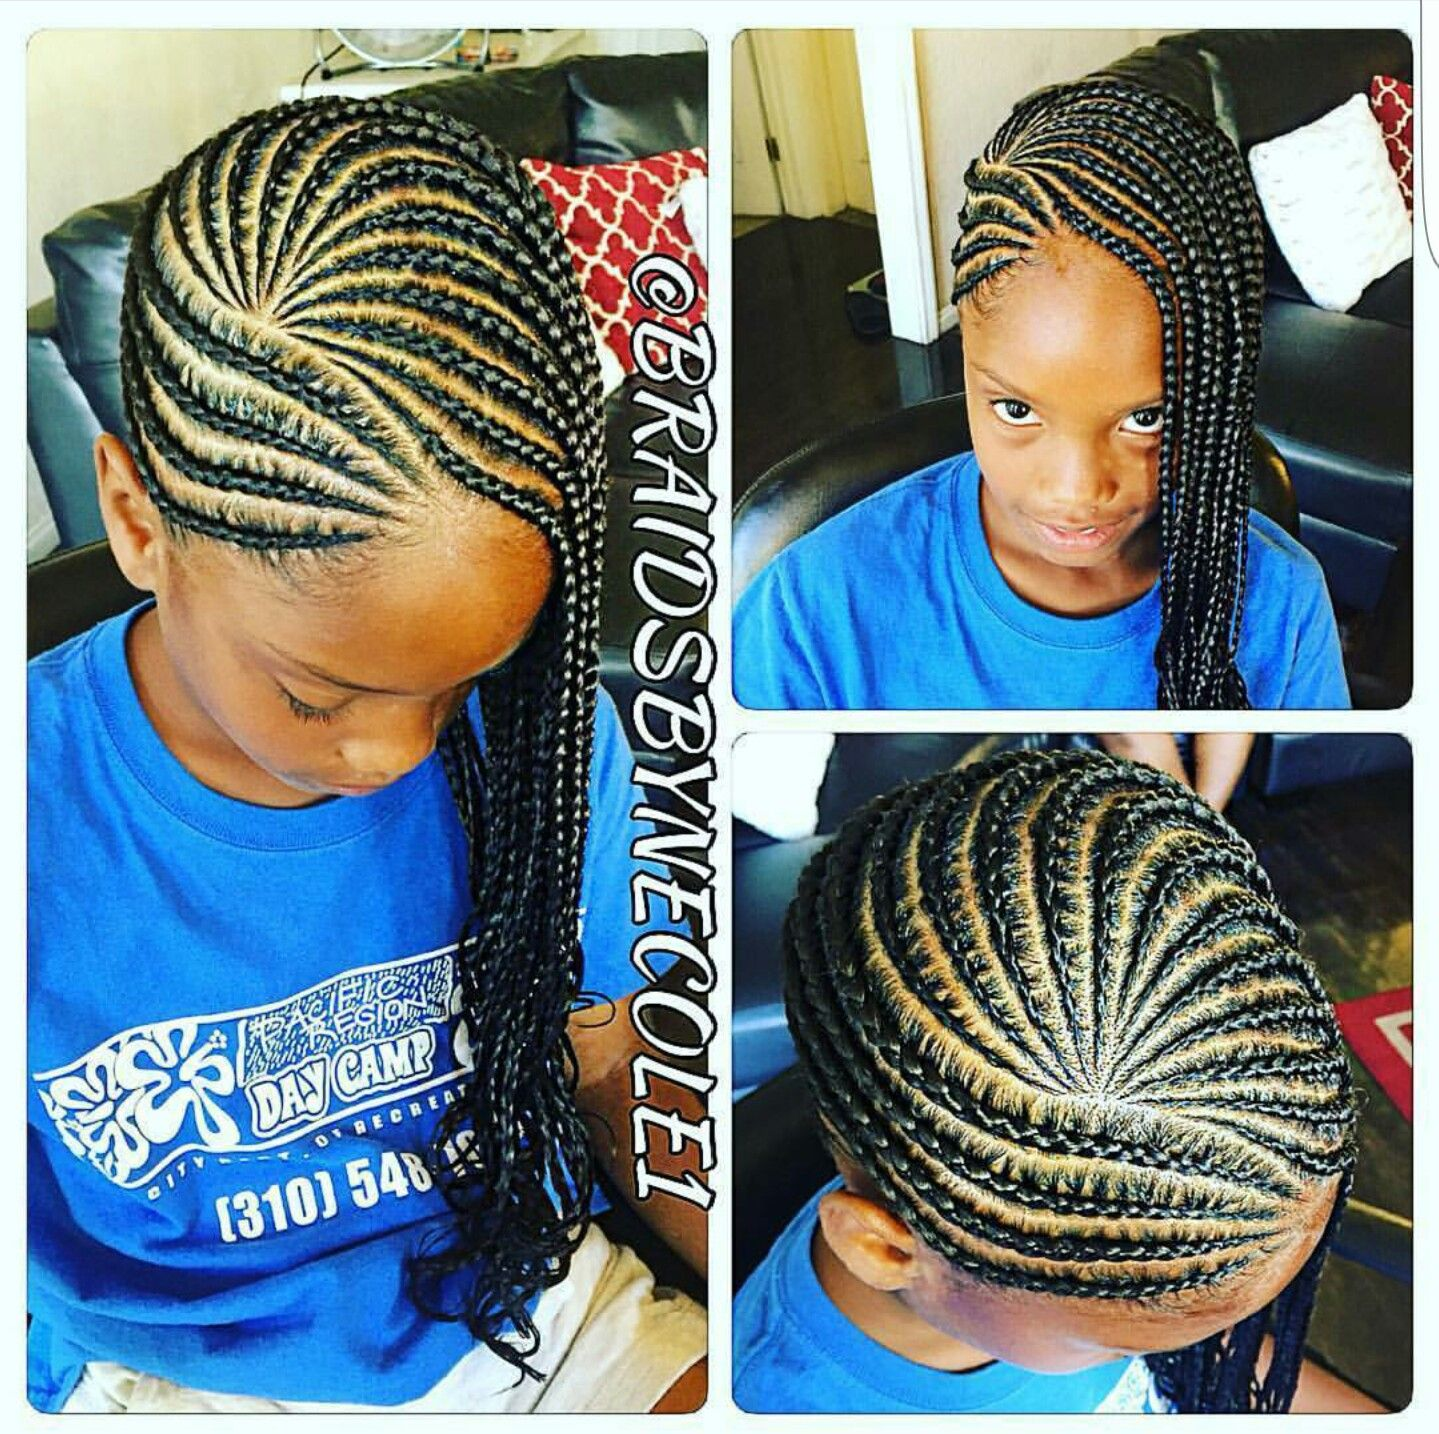 Braiding Hairstyles For 10 Year Olds Brilliant Children's Cornrows  Natural Hair Style Braids  Pinterest